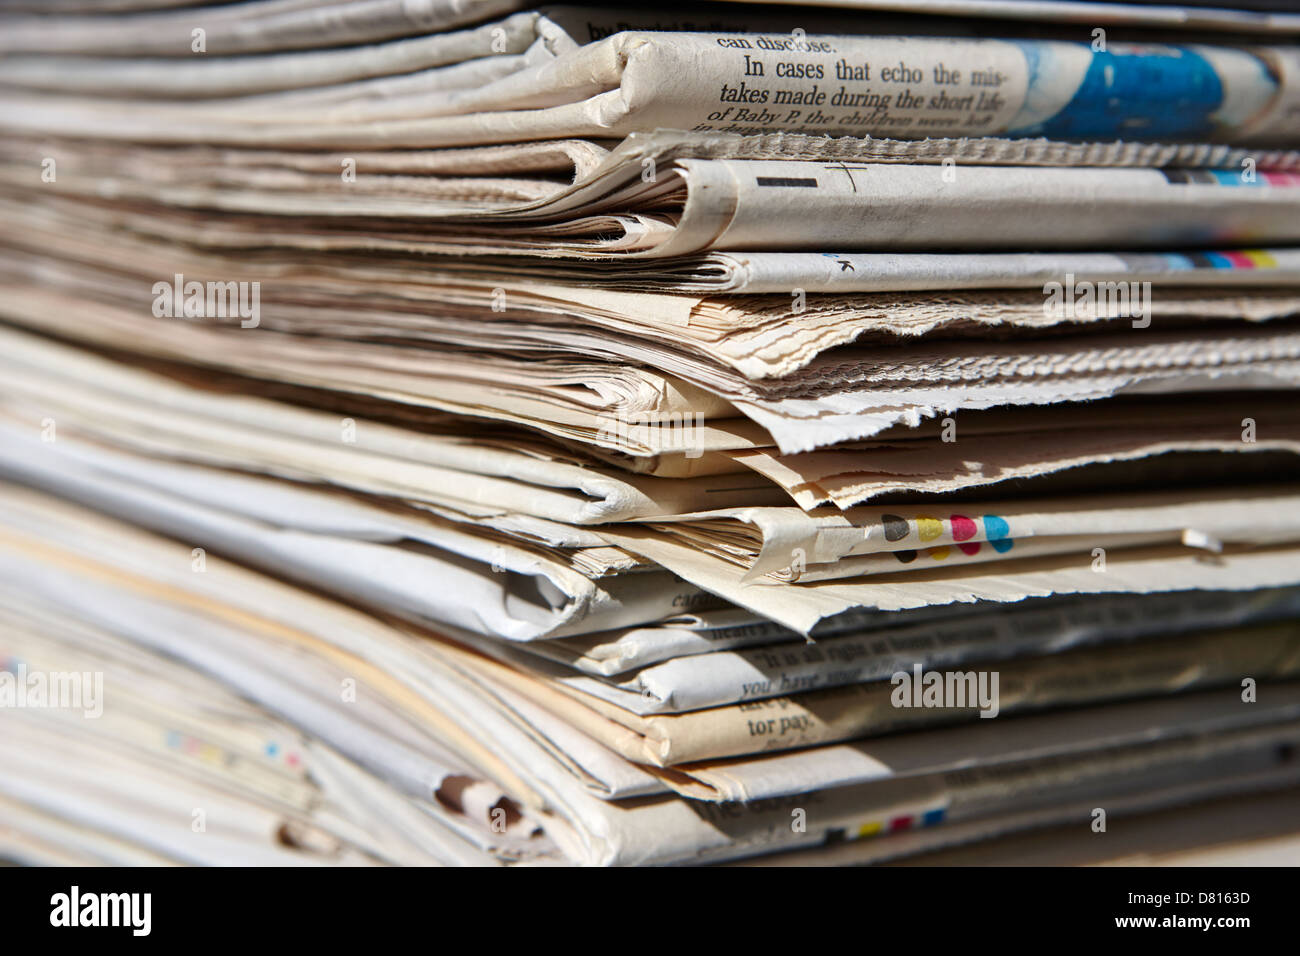 pile of old newspapers ready for recycling in the uk - Stock Image